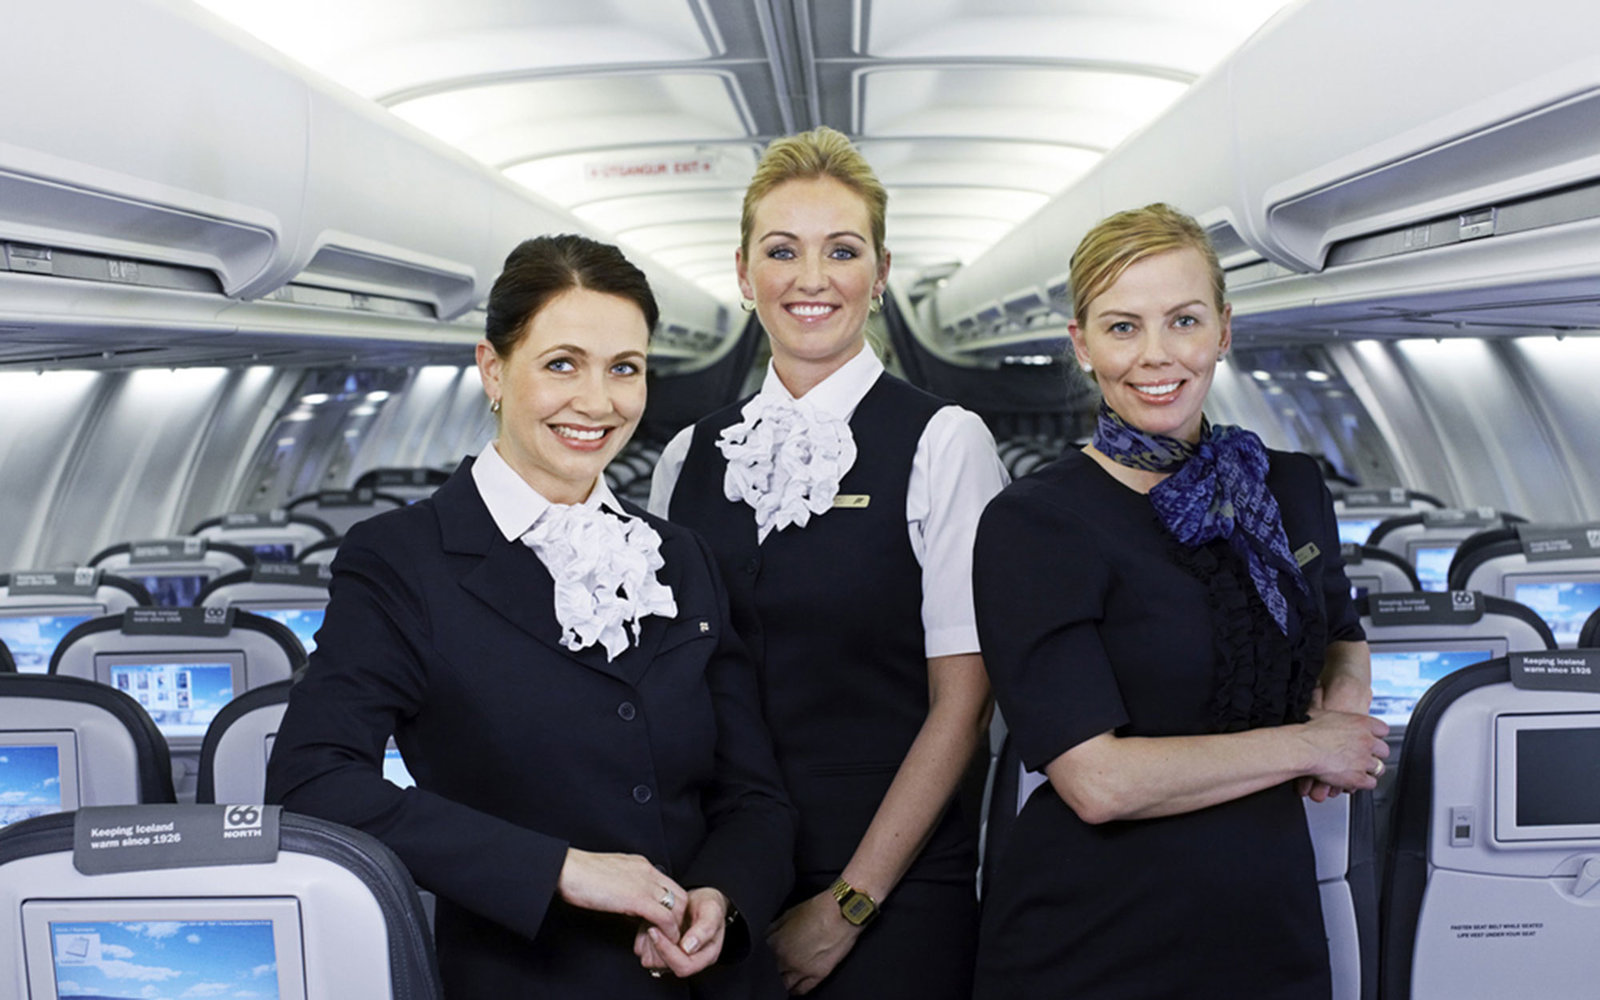 World S Best Airlines For Customer Service 2015 Travel